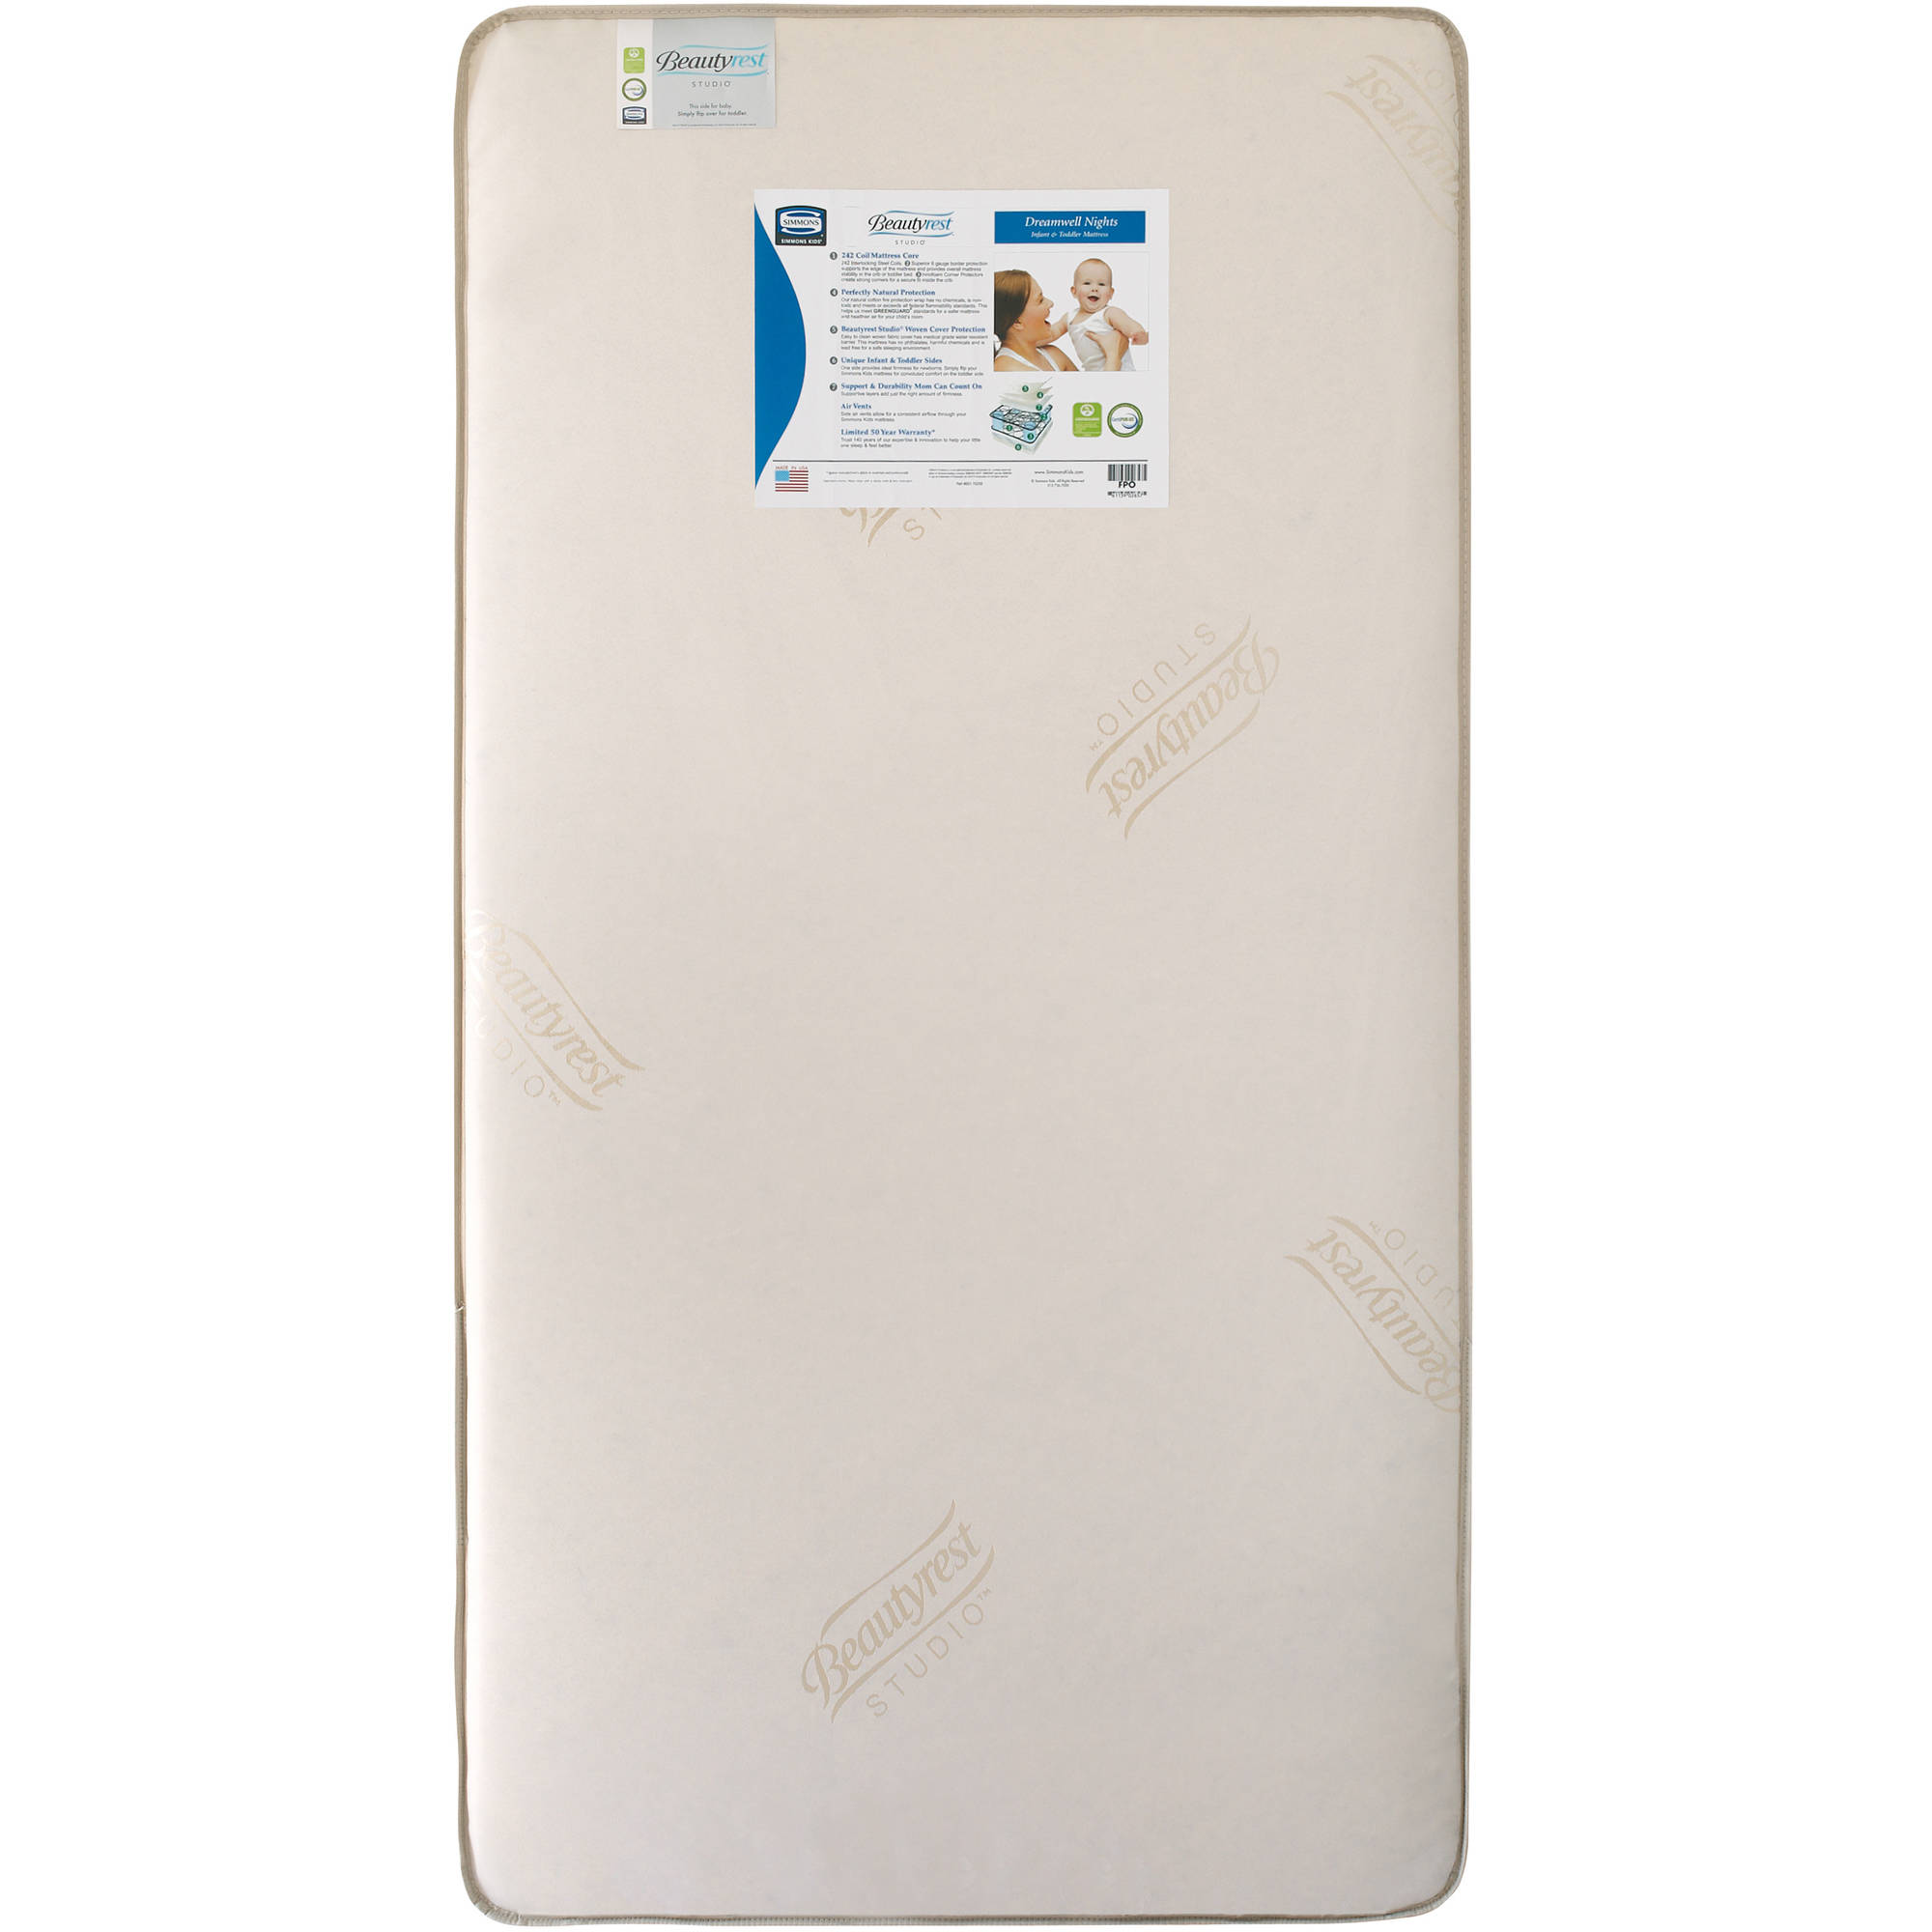 Simmons Dreamwell Nights Infant and Toddler Crib Mattress